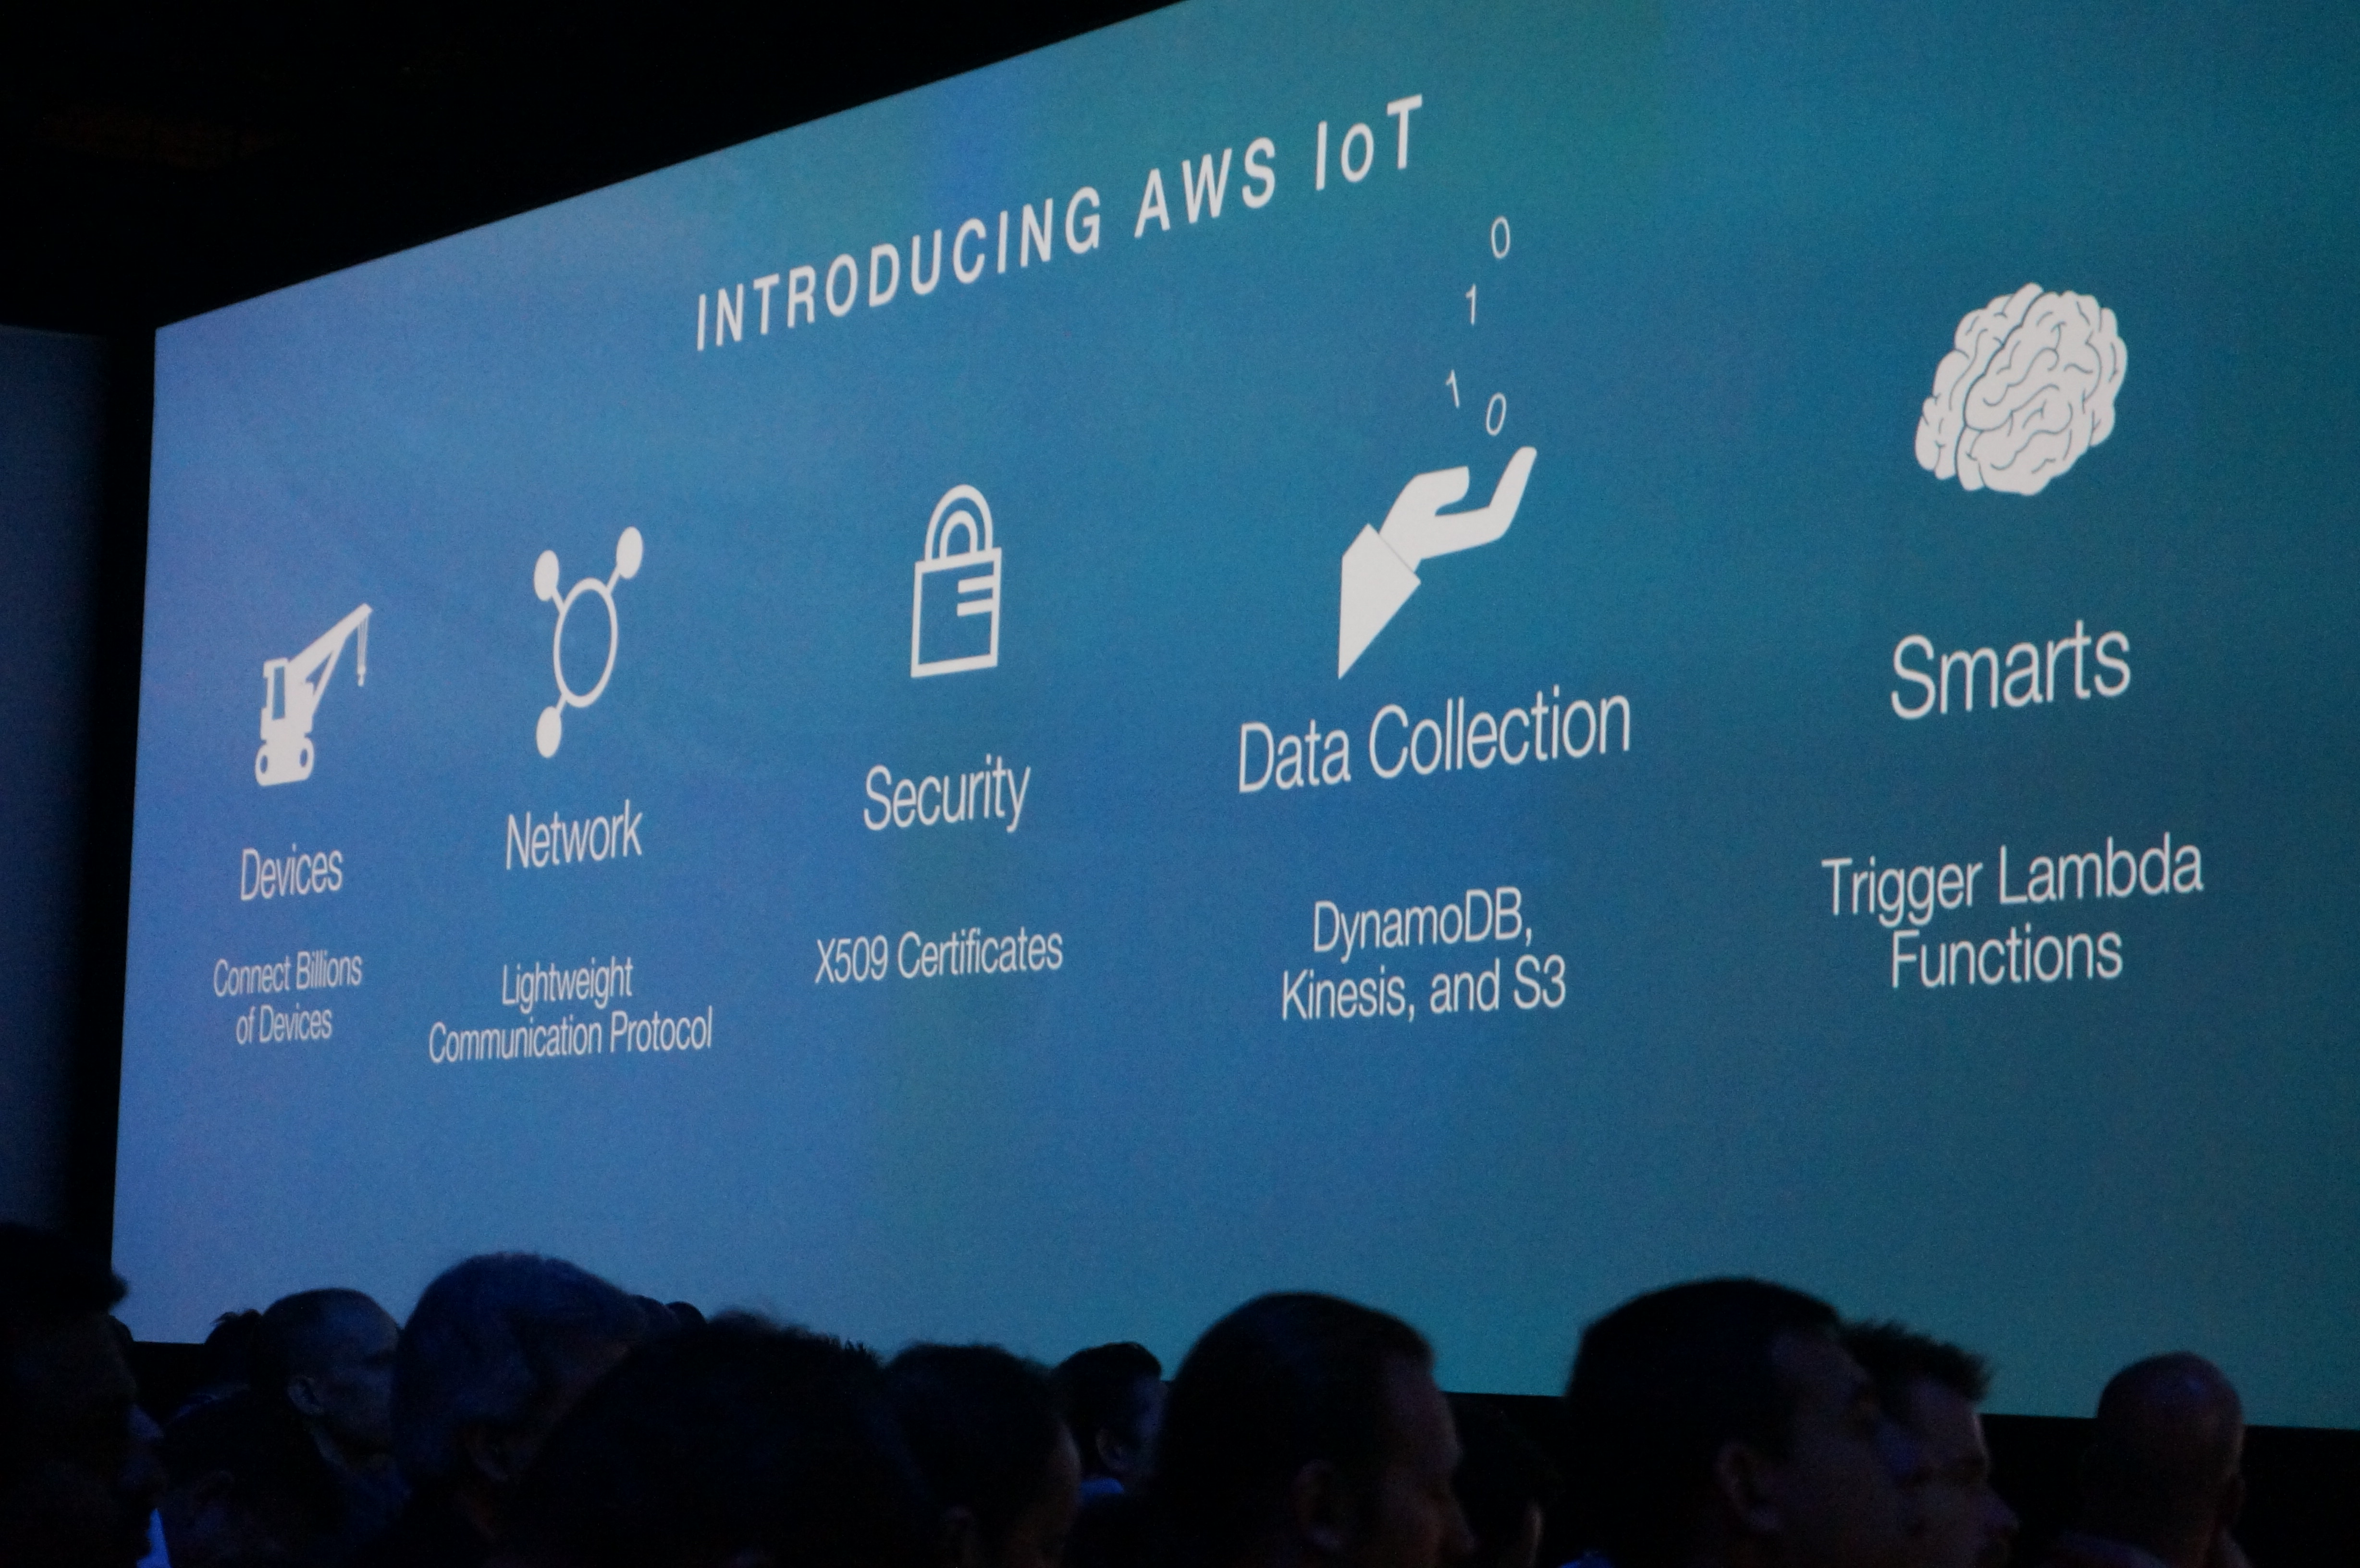 Amazon Launches AWS IoT — A Platform For Building, Managing